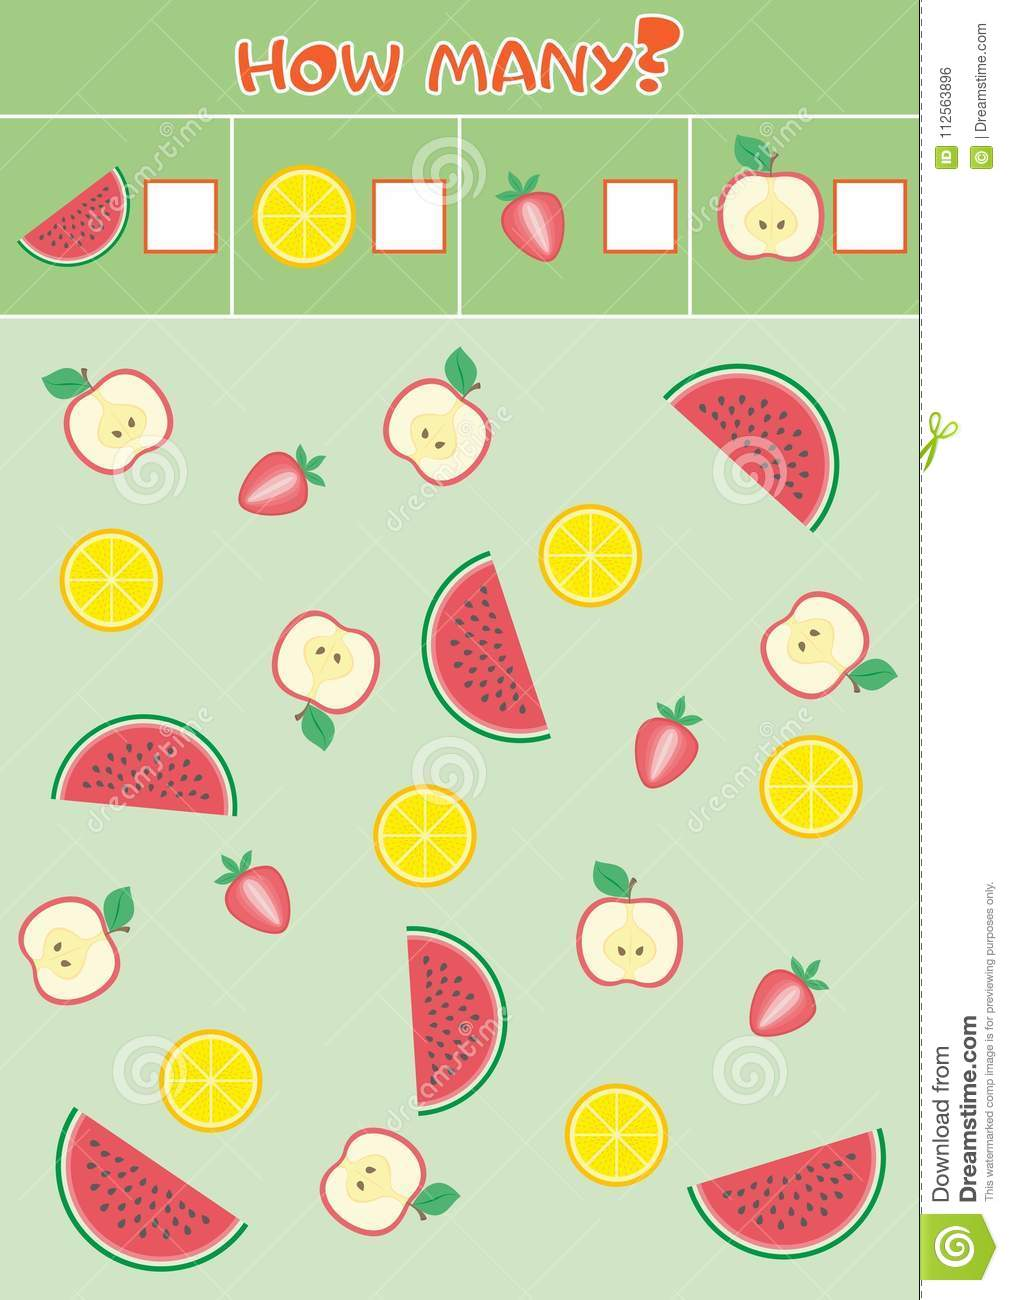 Educational Counting Game For Preschool Children With A Variety Of Fruits Stock Vector Illustration Of Learning Kids 112563896